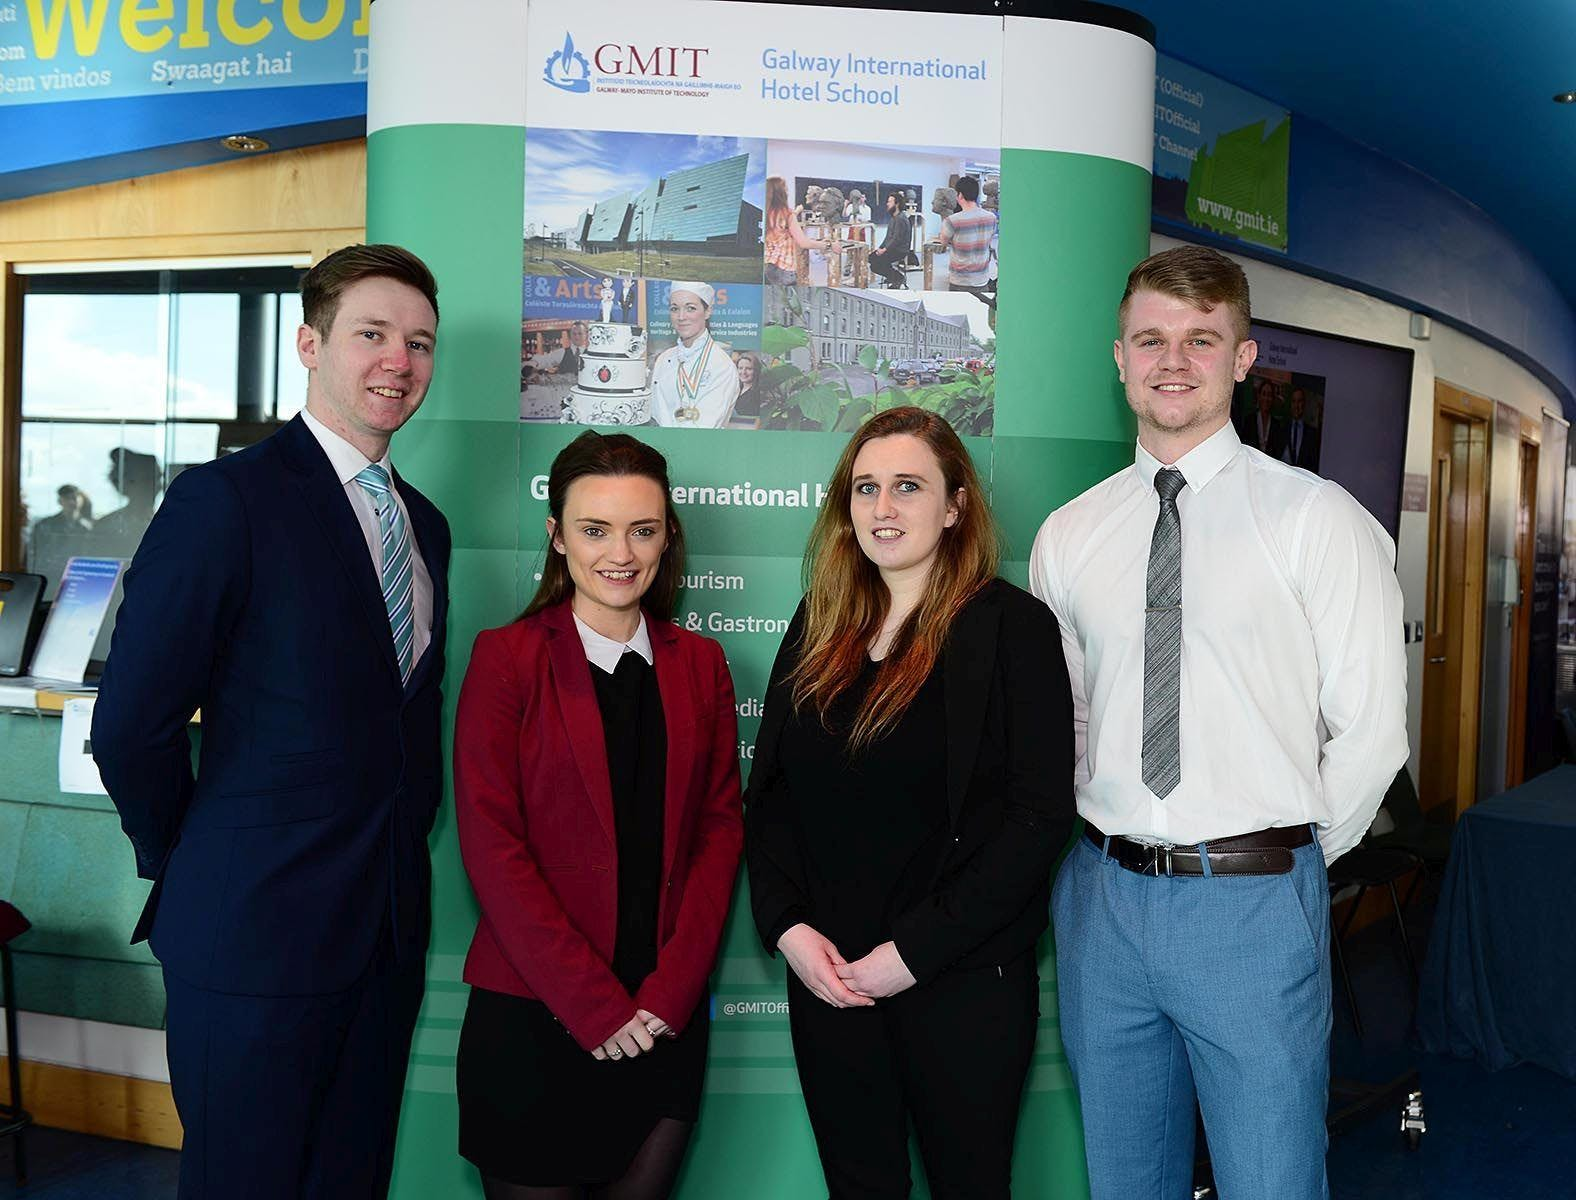 GMIT Galway International Hotel School CAO Information Evening